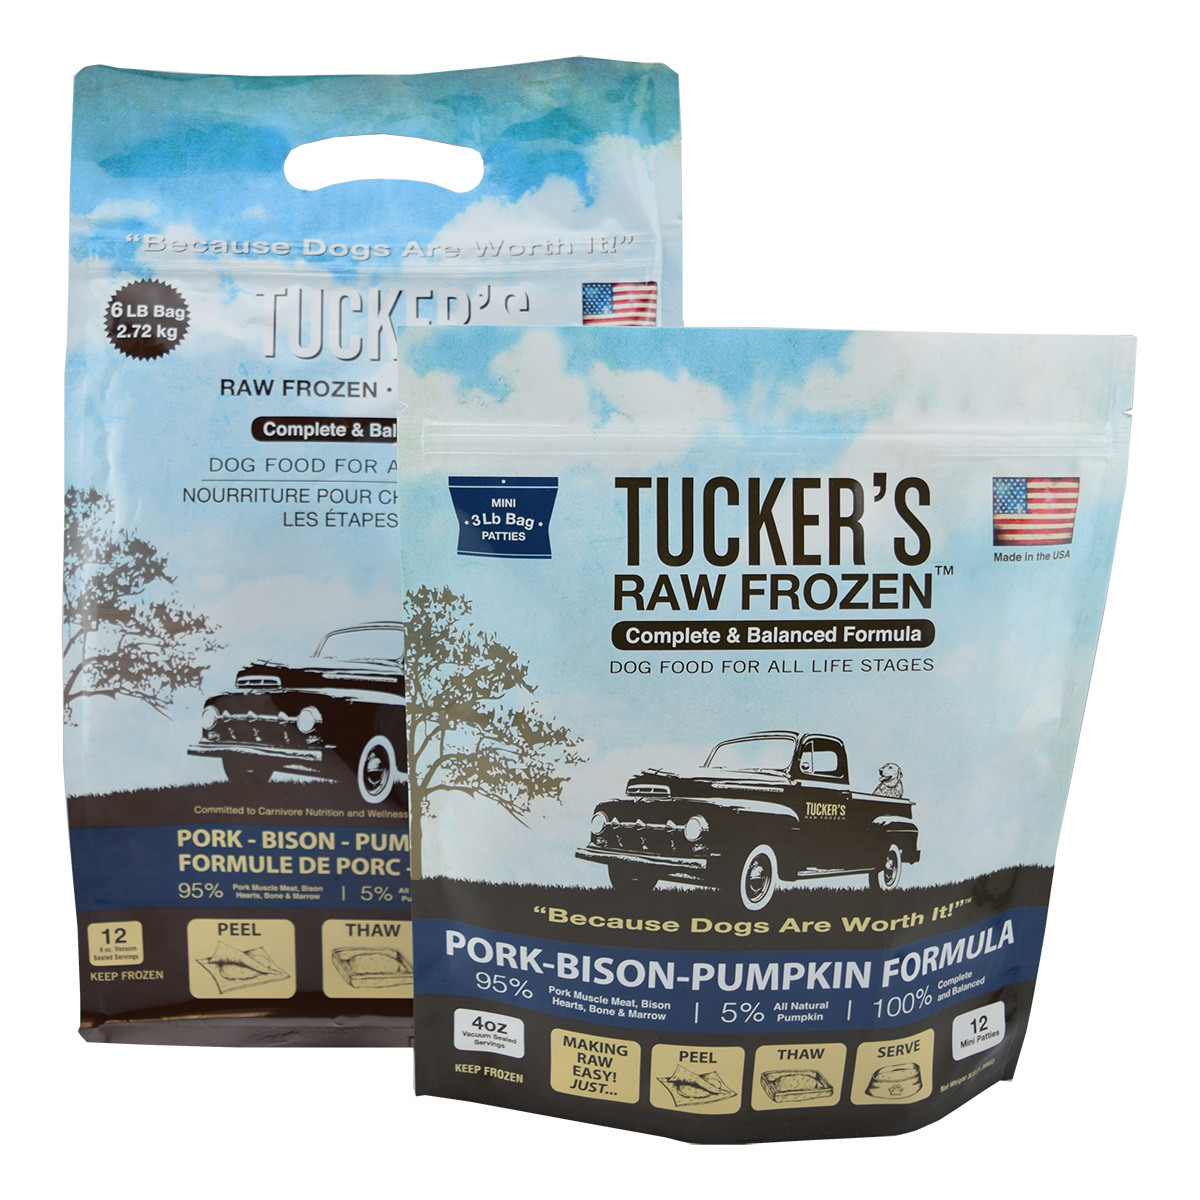 click here to shop Tucker's Raw Frozen Pork-Bison-Pumpkin Dog Food.